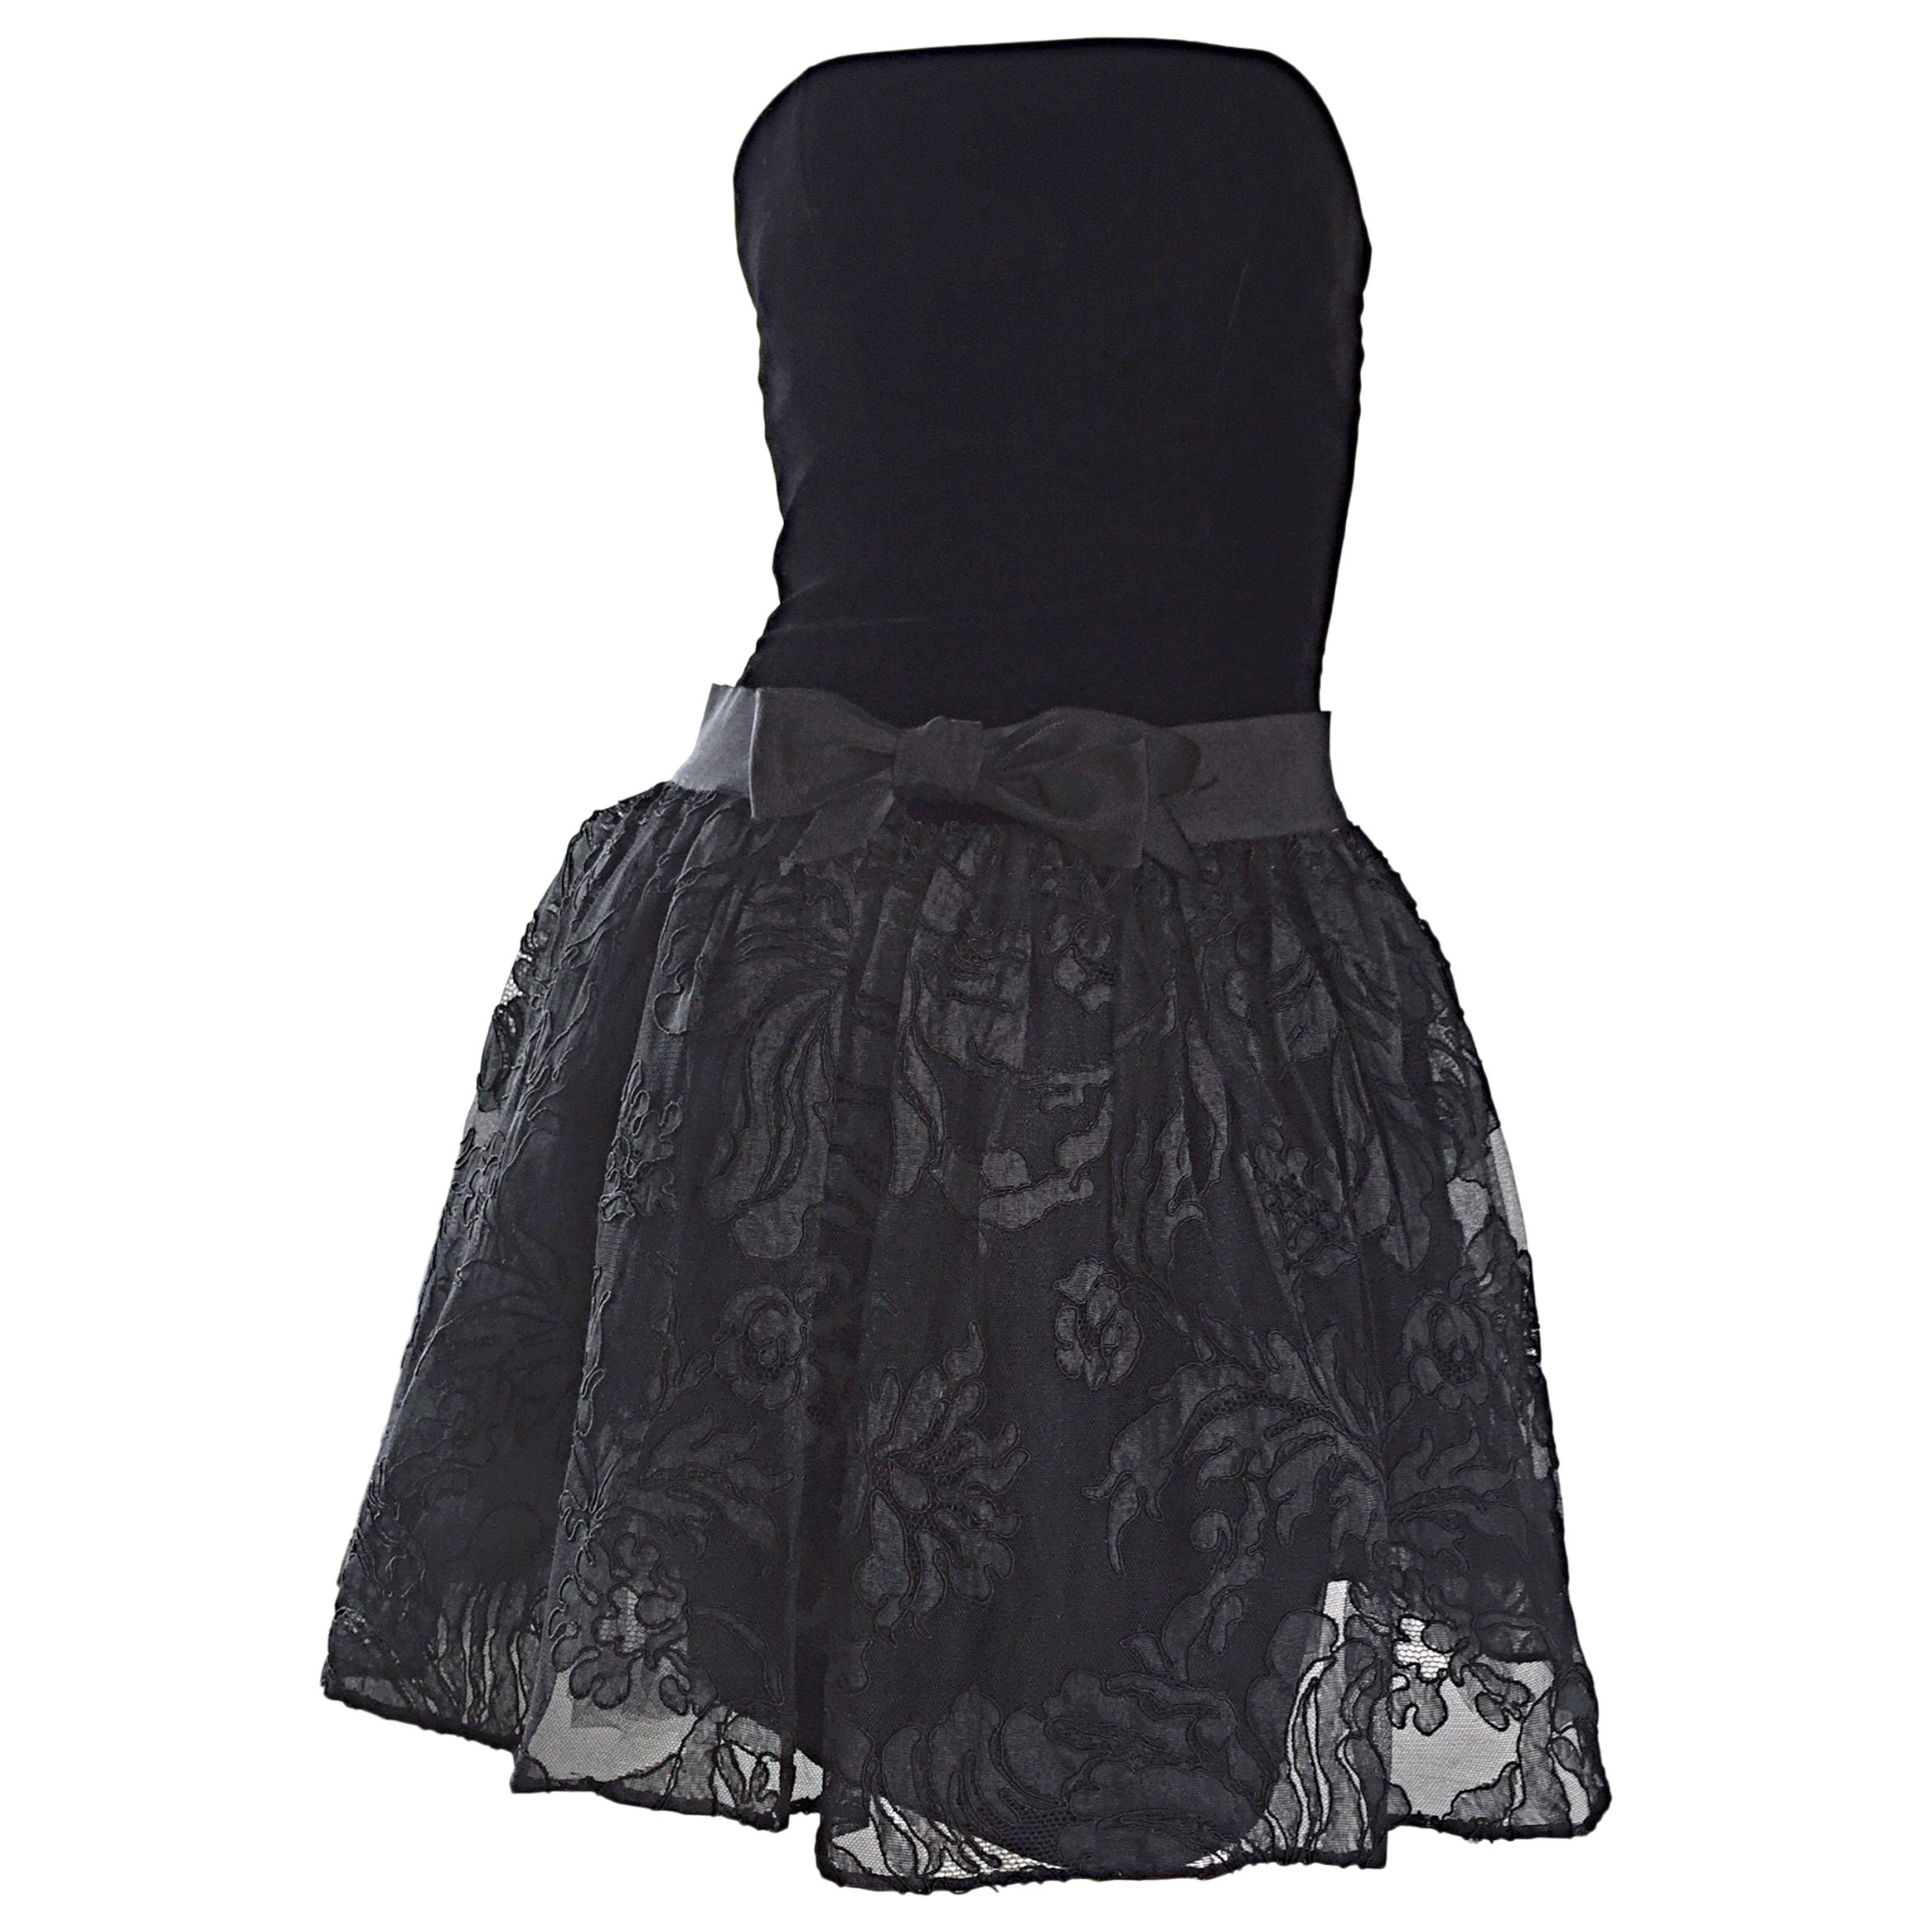 Vintage James Purcell Size 2 1990s Couture Black Silk Lace 90s Strapless Dress